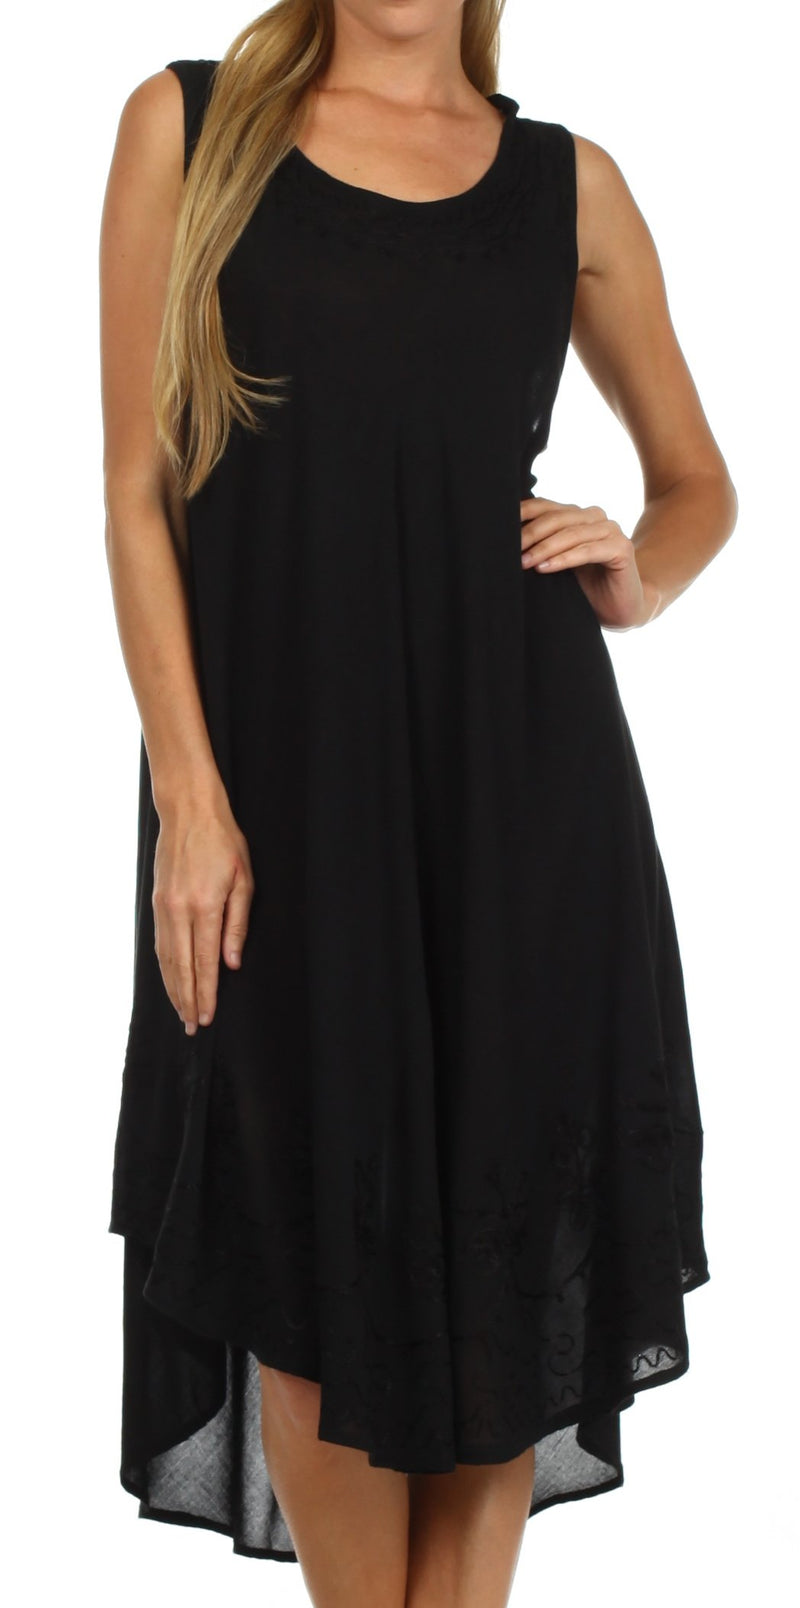 Sakkas Everyday Essentials Caftan Tank Dress / Cover Up